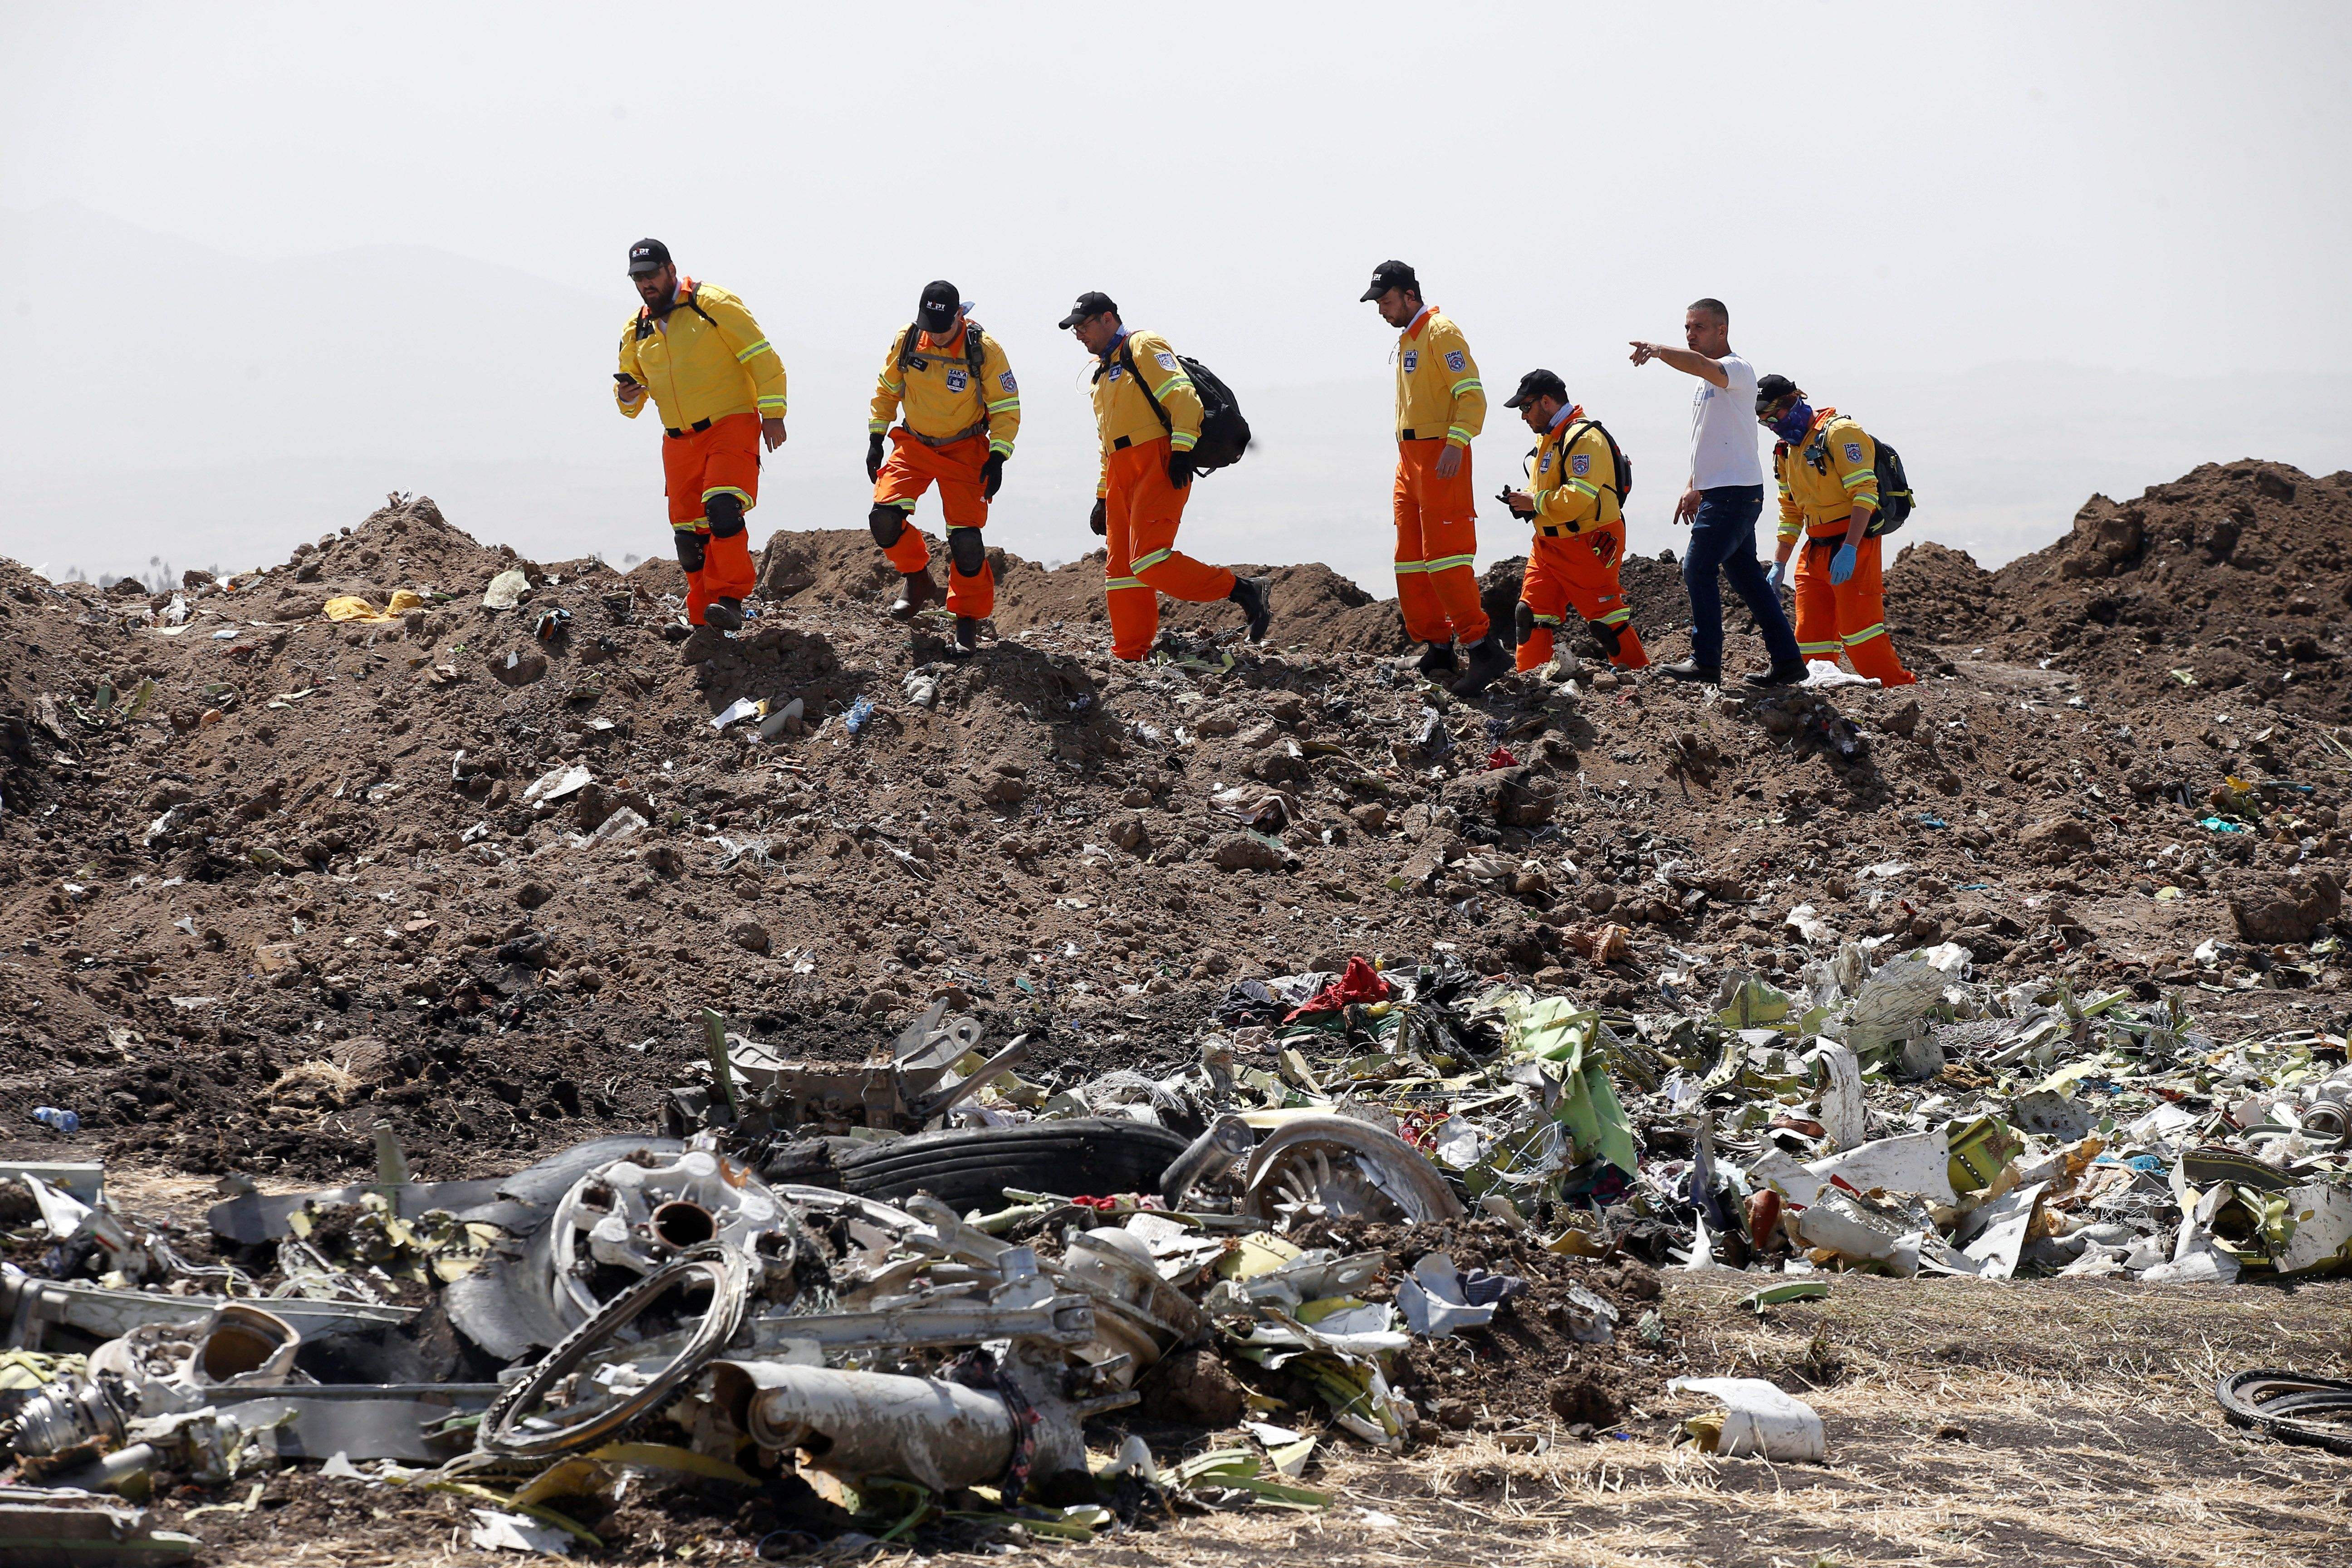 The crash site of the Ethiopian Airlines